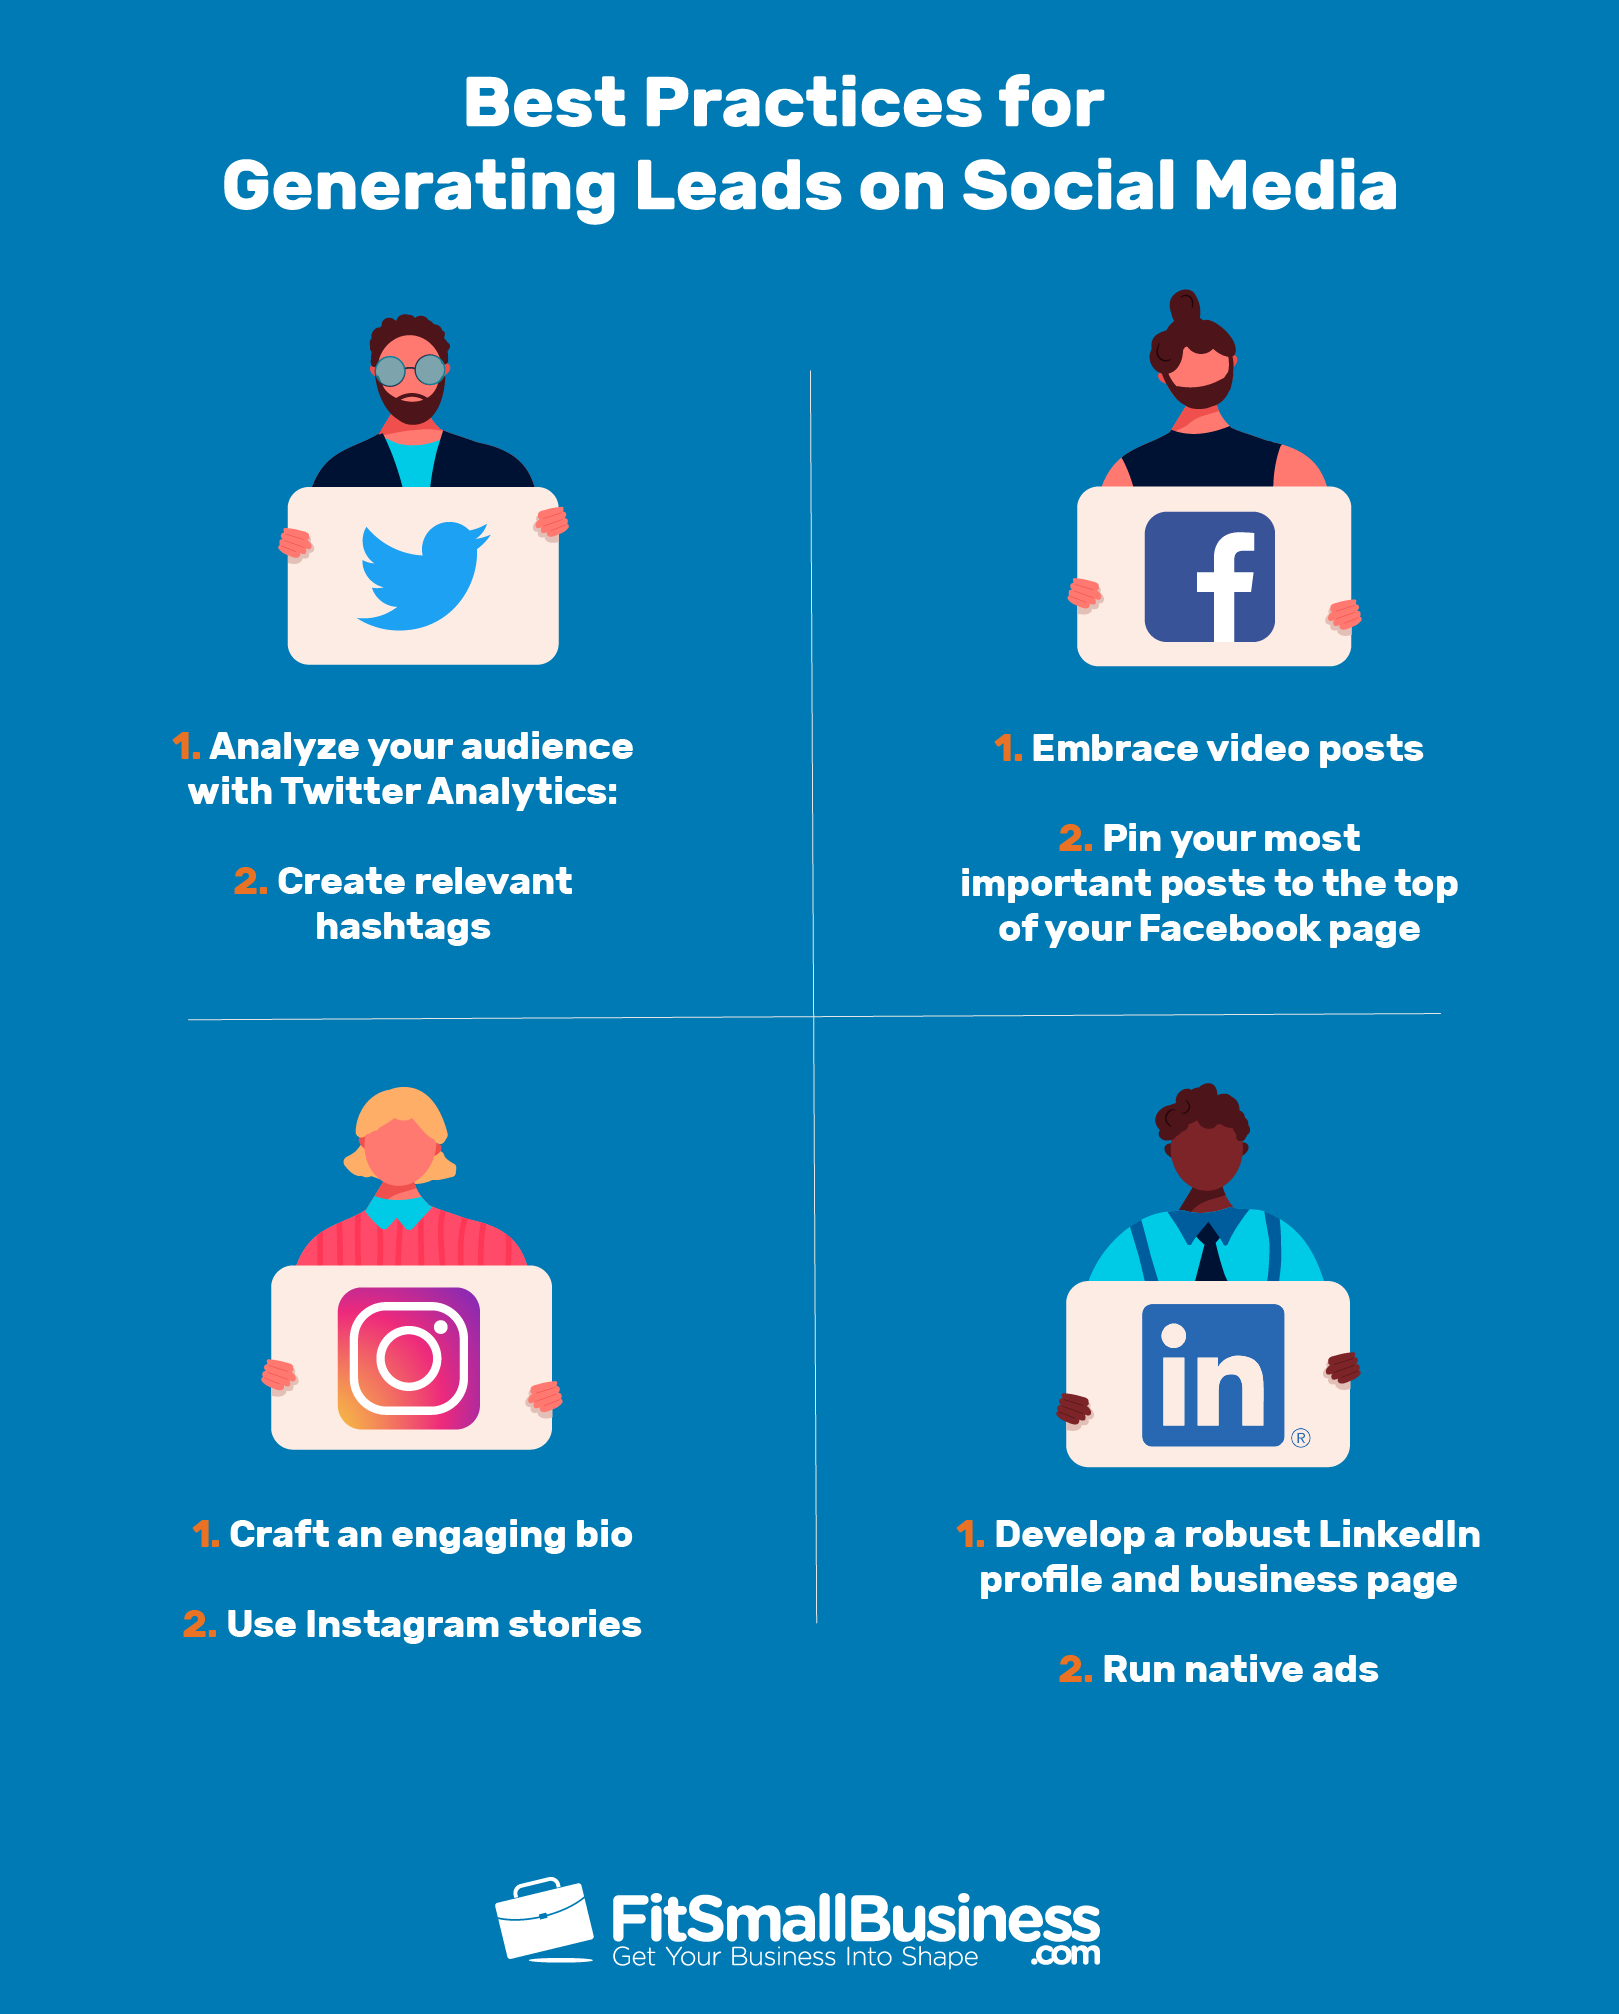 Best practices for generating leads on social media